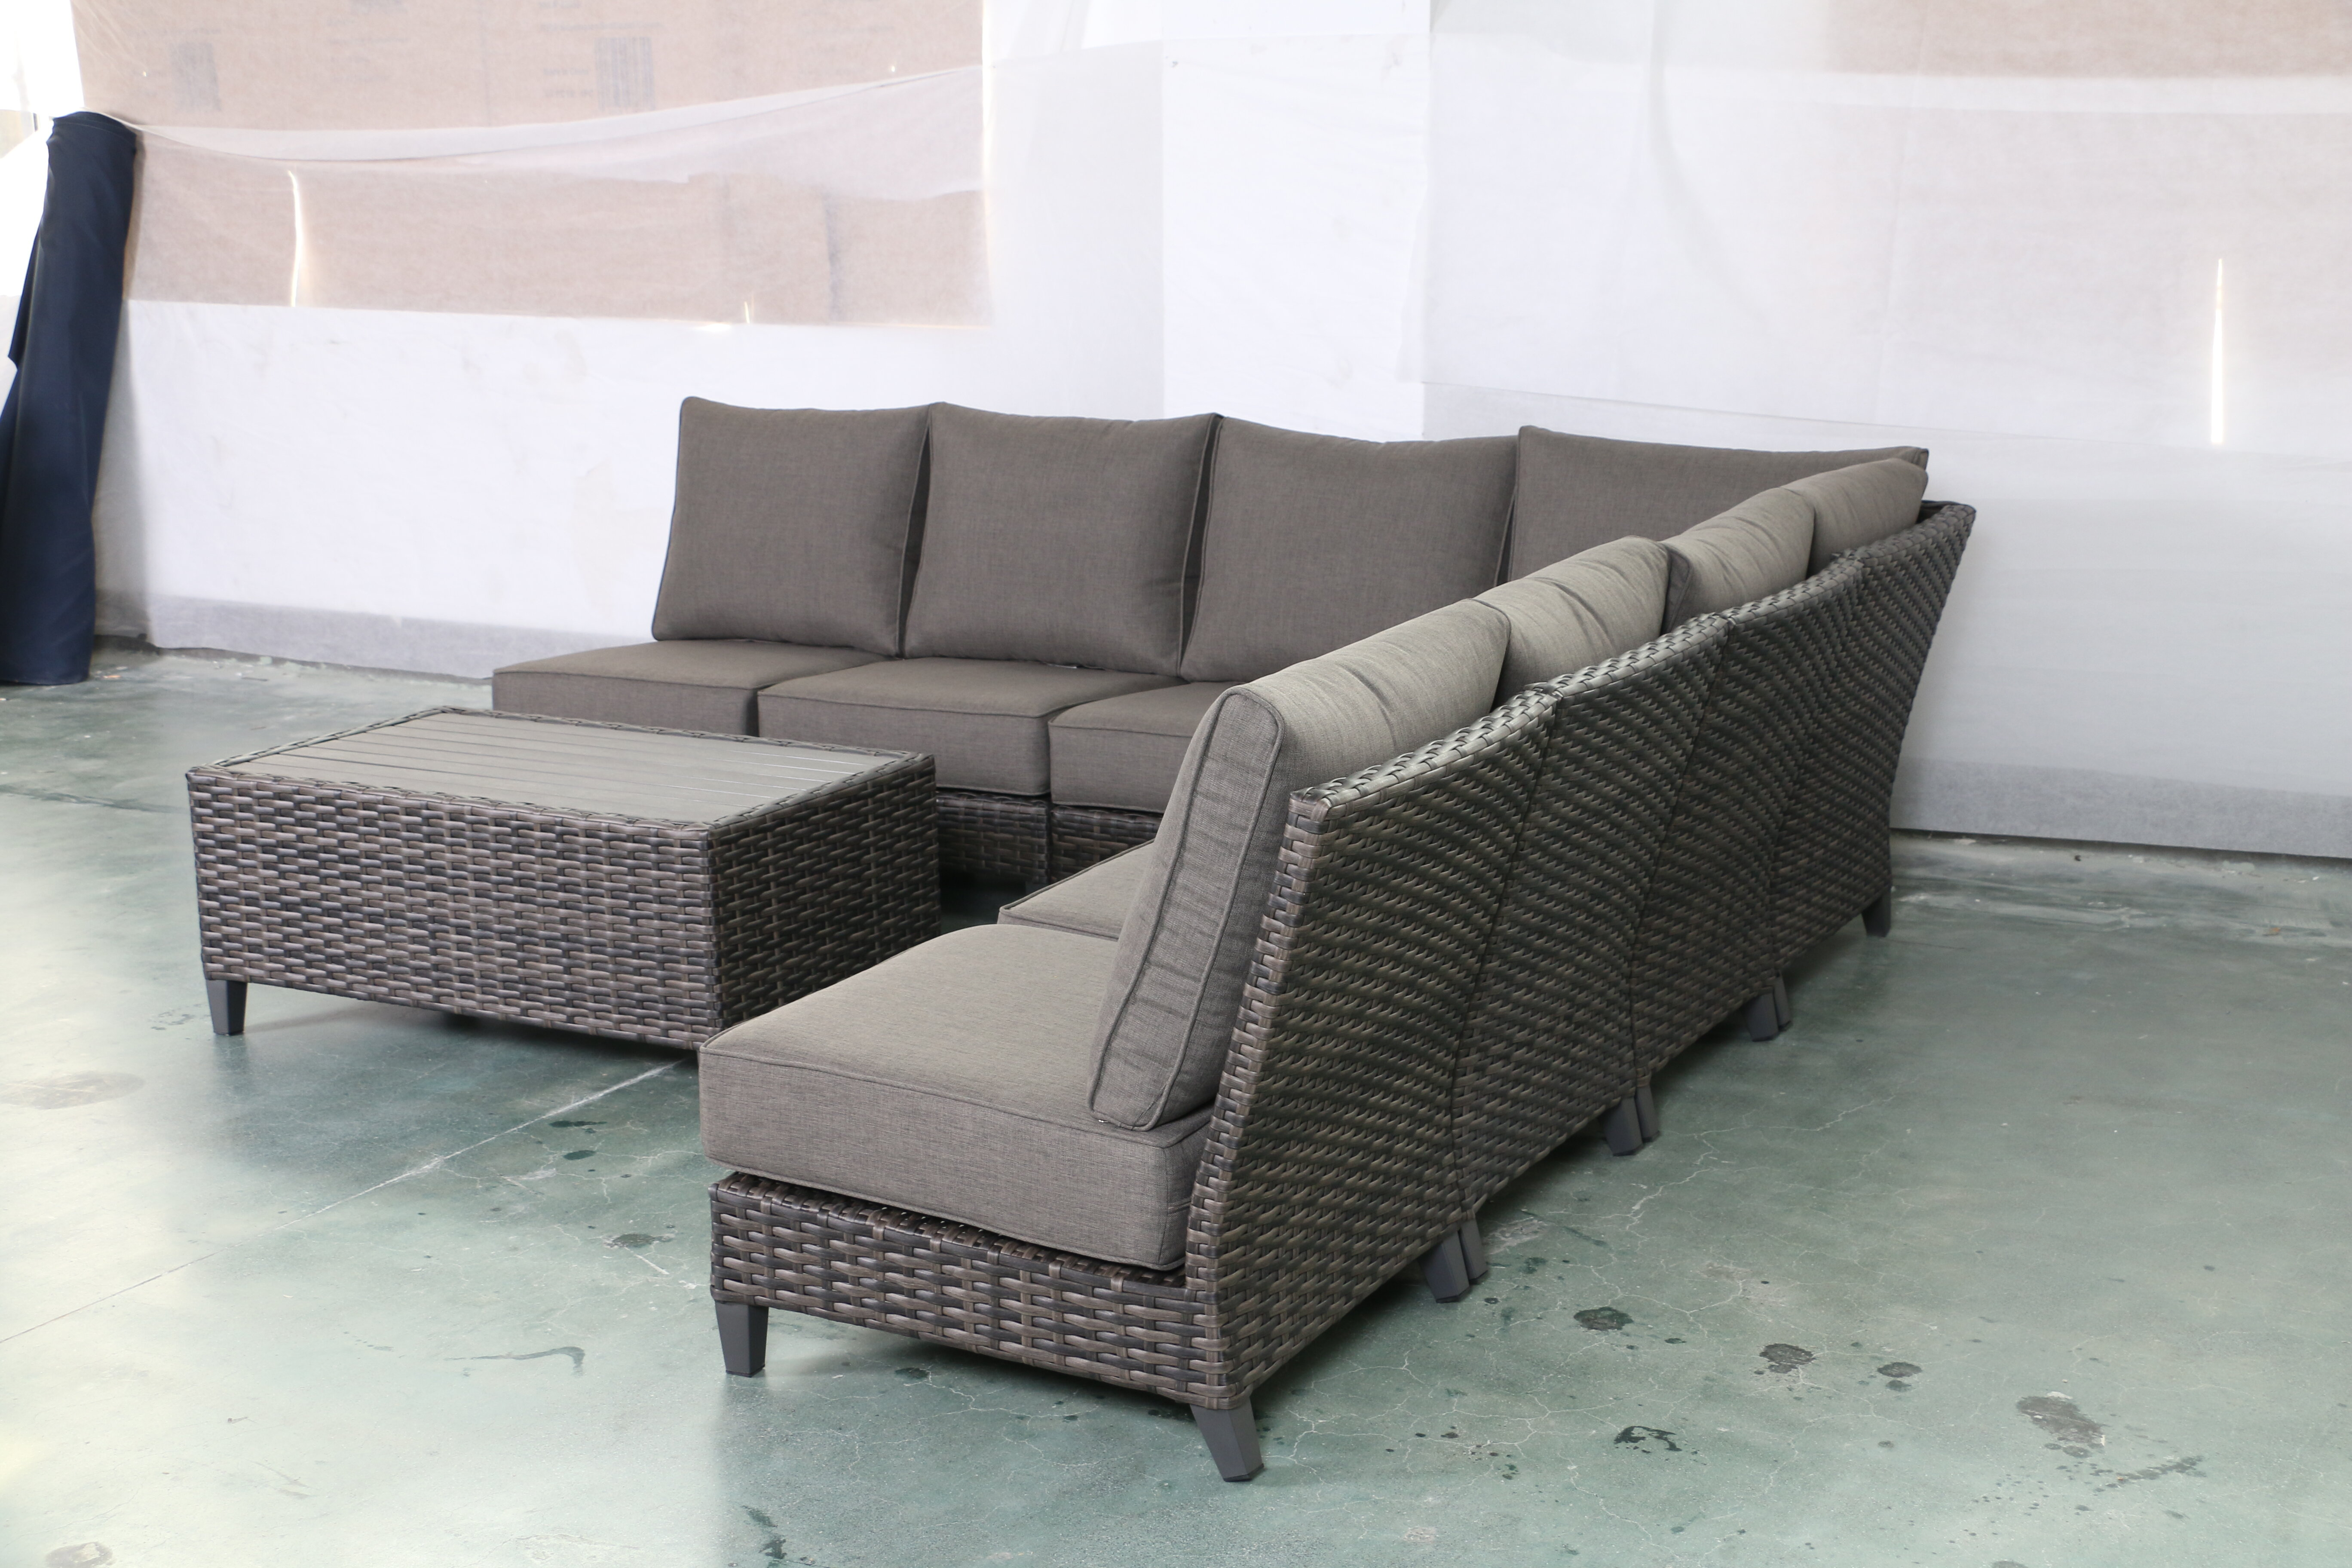 Bayou Breeze Rebeca Armless 8 Piece Rattan Sectional Seating Group With Cushions Wayfair